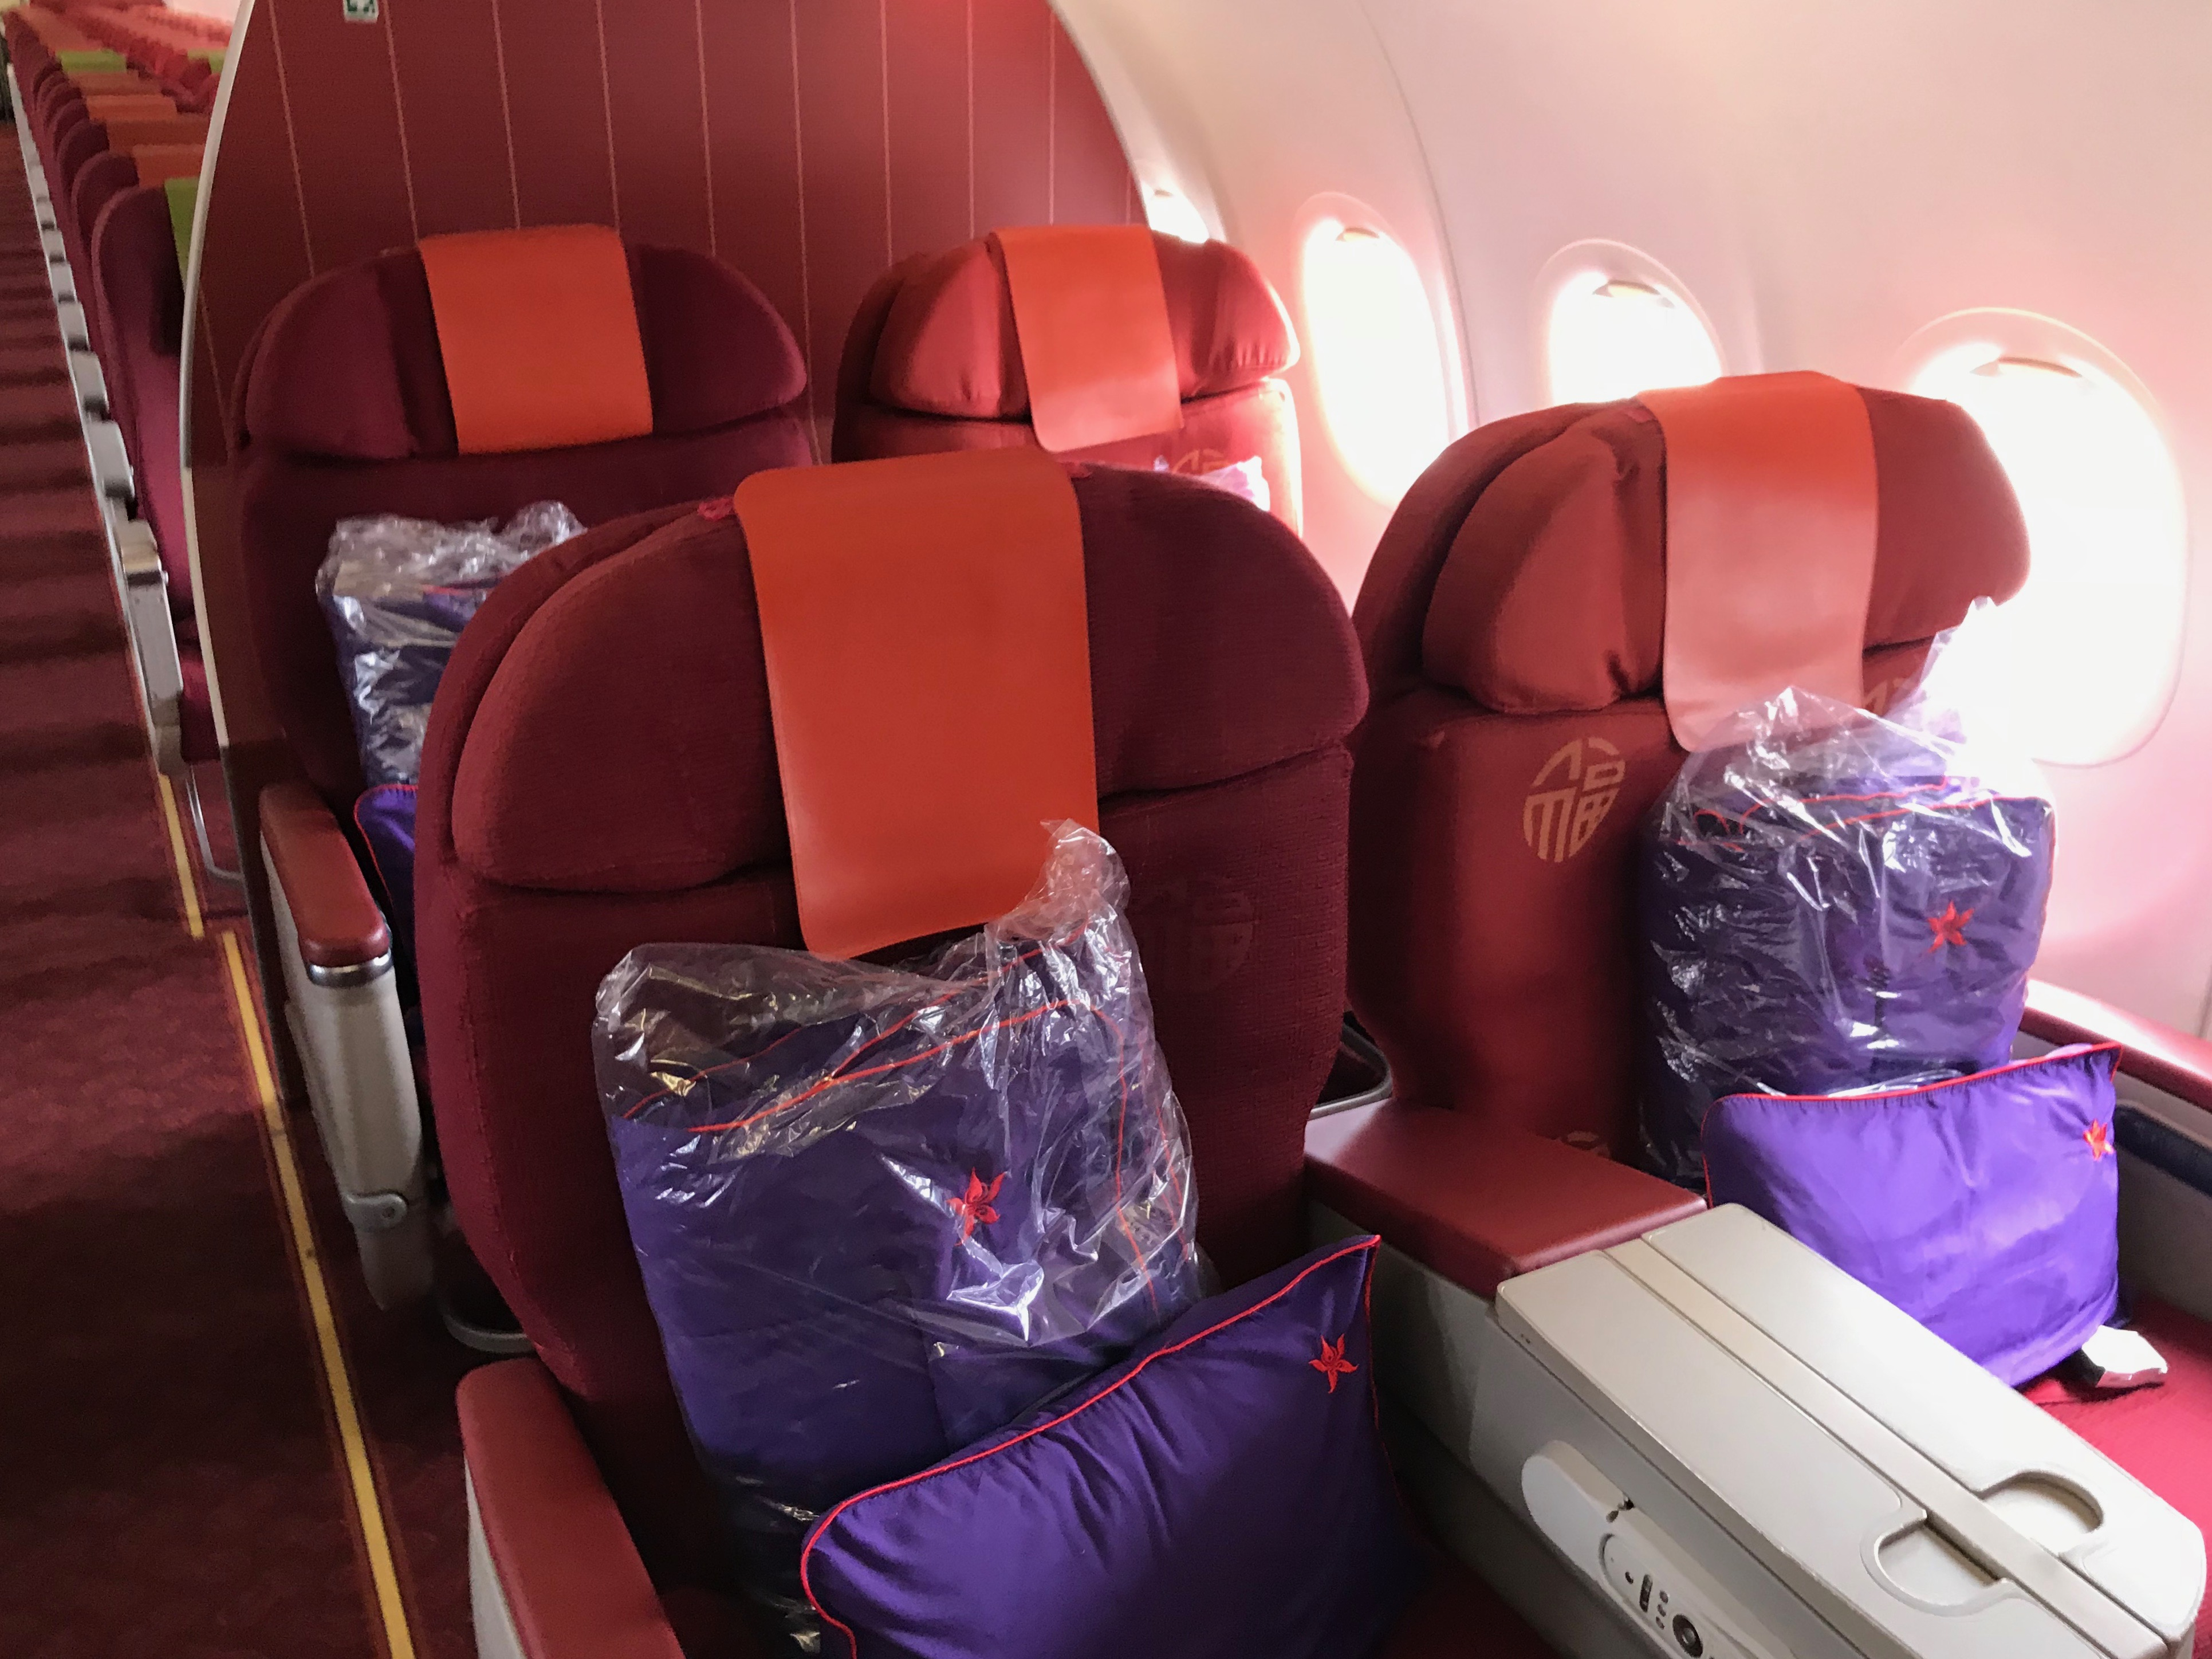 Review: Hong Kong Airlines Airbus A320 Business Cl From ... on boeing 777 seat map, virgin a340 seat map, a 320 seat map, airbus a319 seat map, airbus a380-800 seat map, airbus a330-200 seat map, delta airbus 333 seat map, virgin boeing 747-400 seat map, delta md-90 seat map, a320 jet seat map,